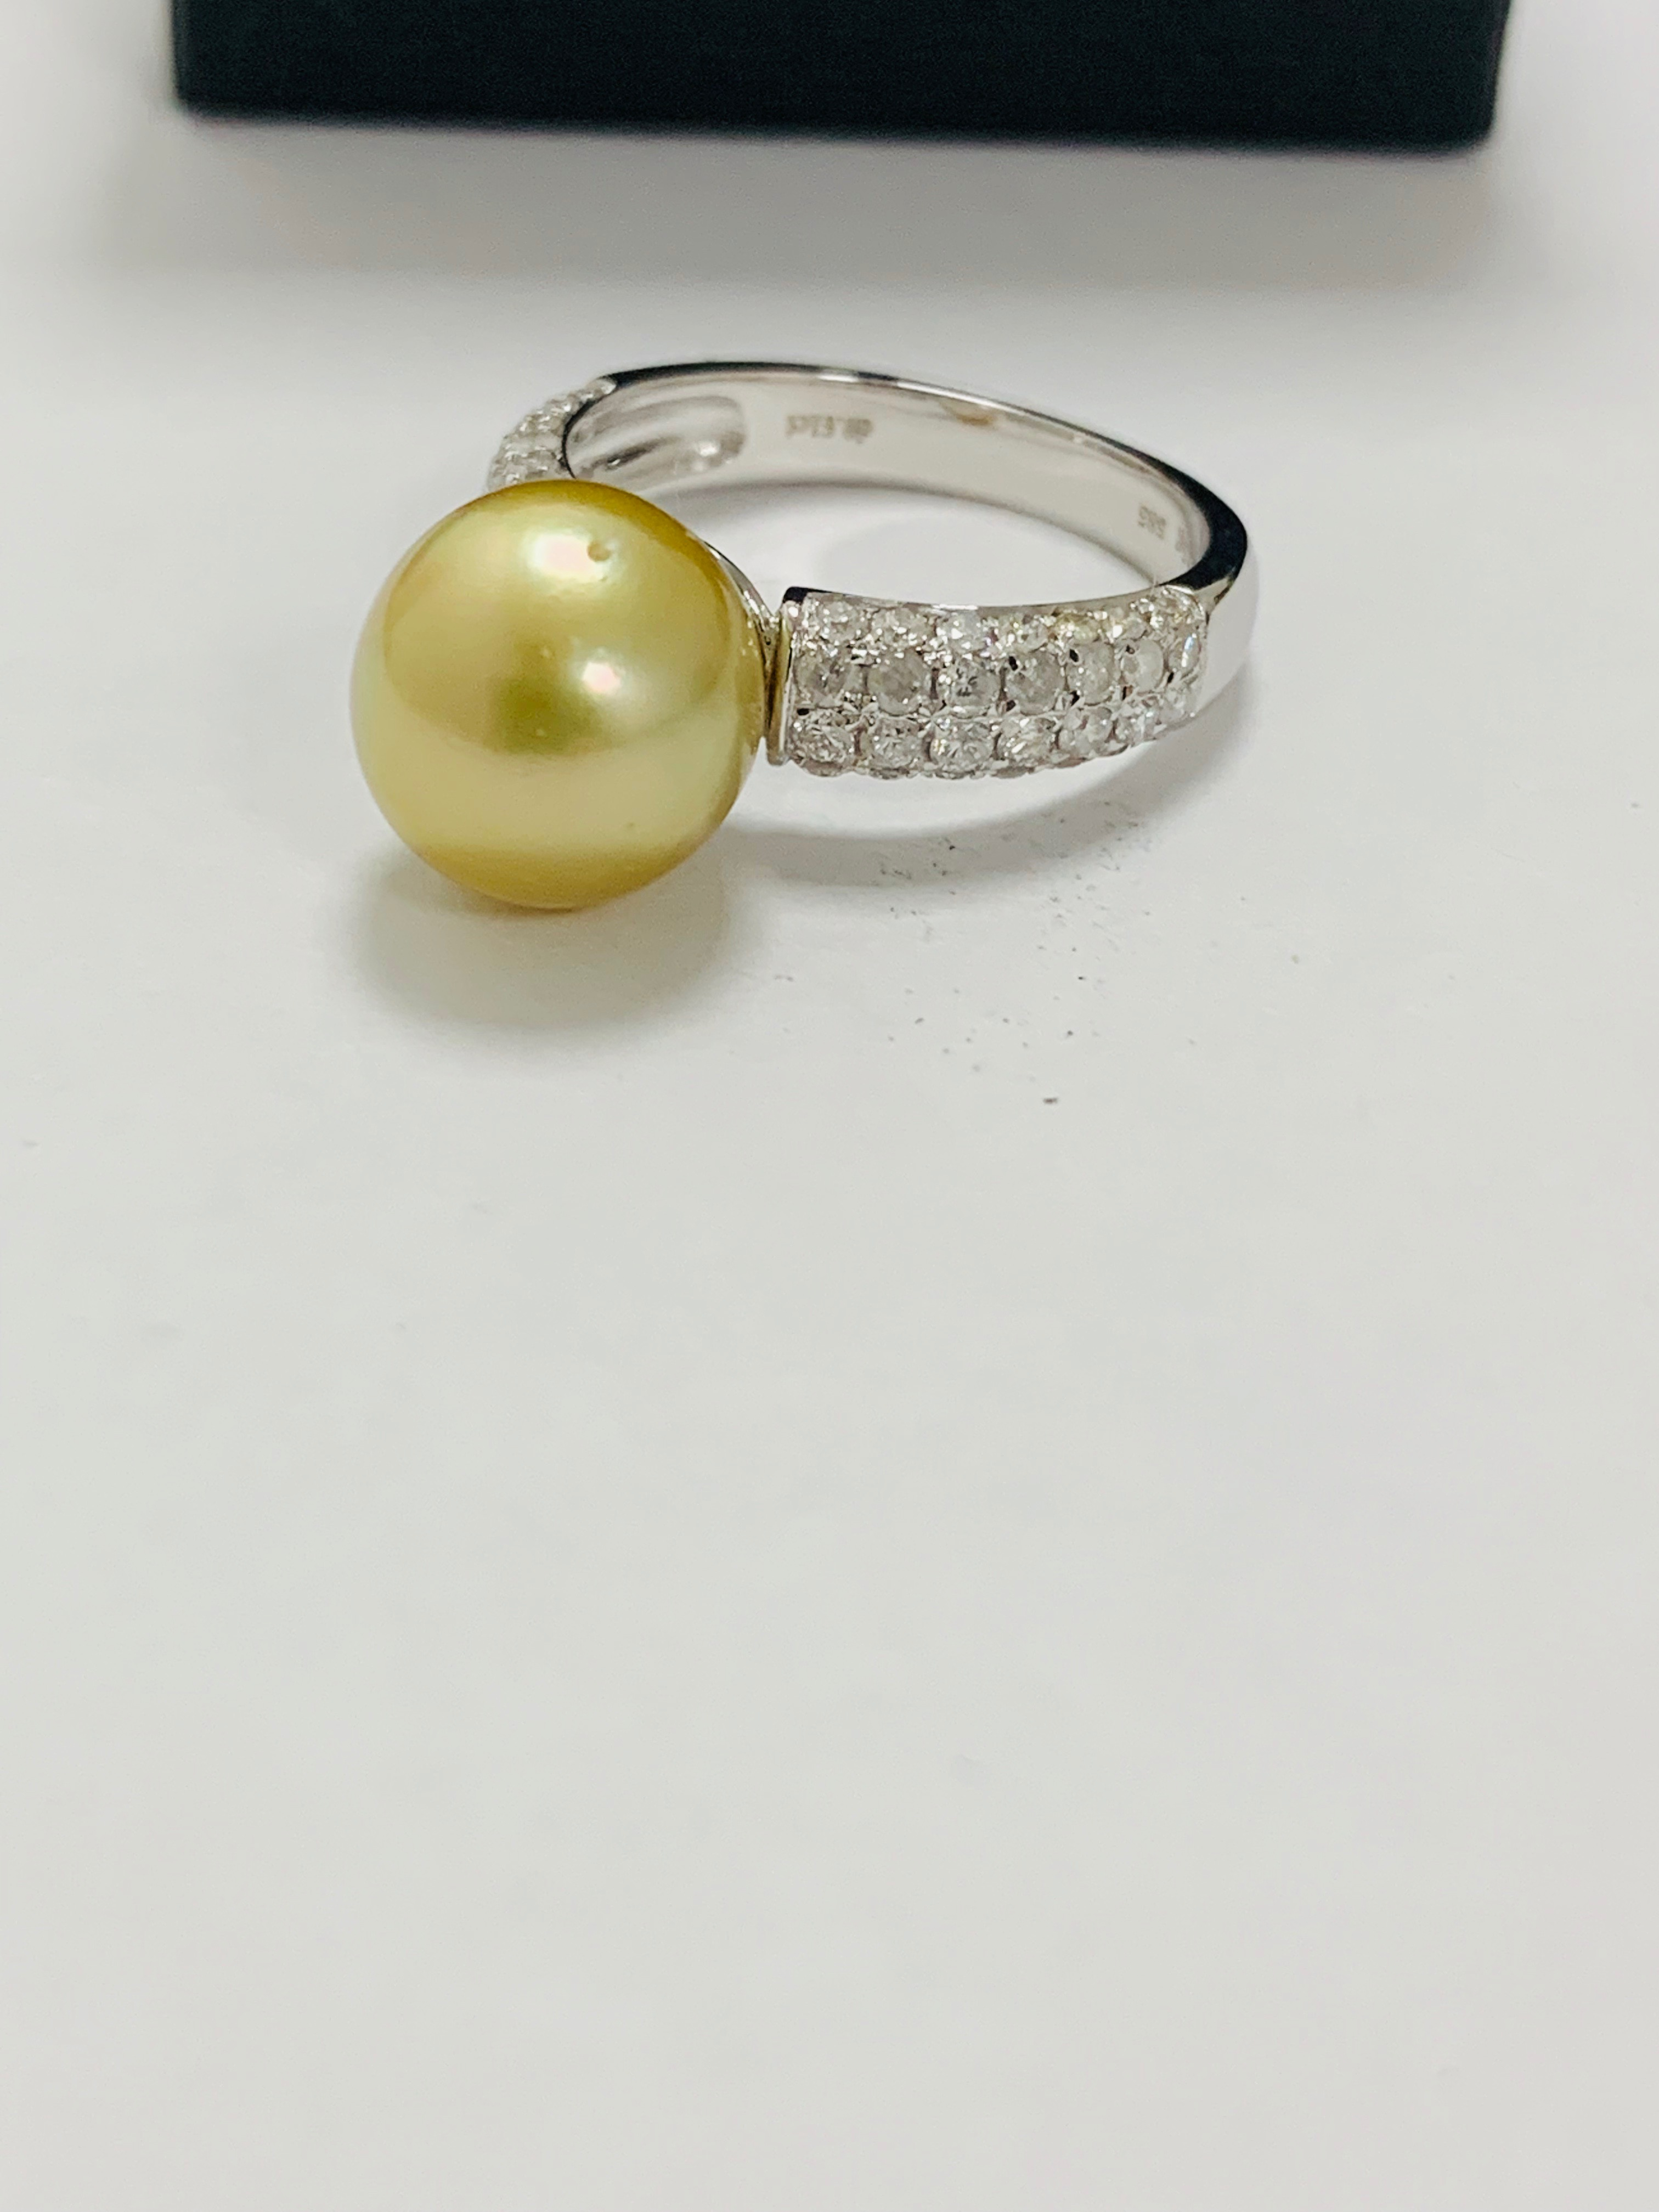 14ct white gold pearl & diamond ring. - Image 6 of 13